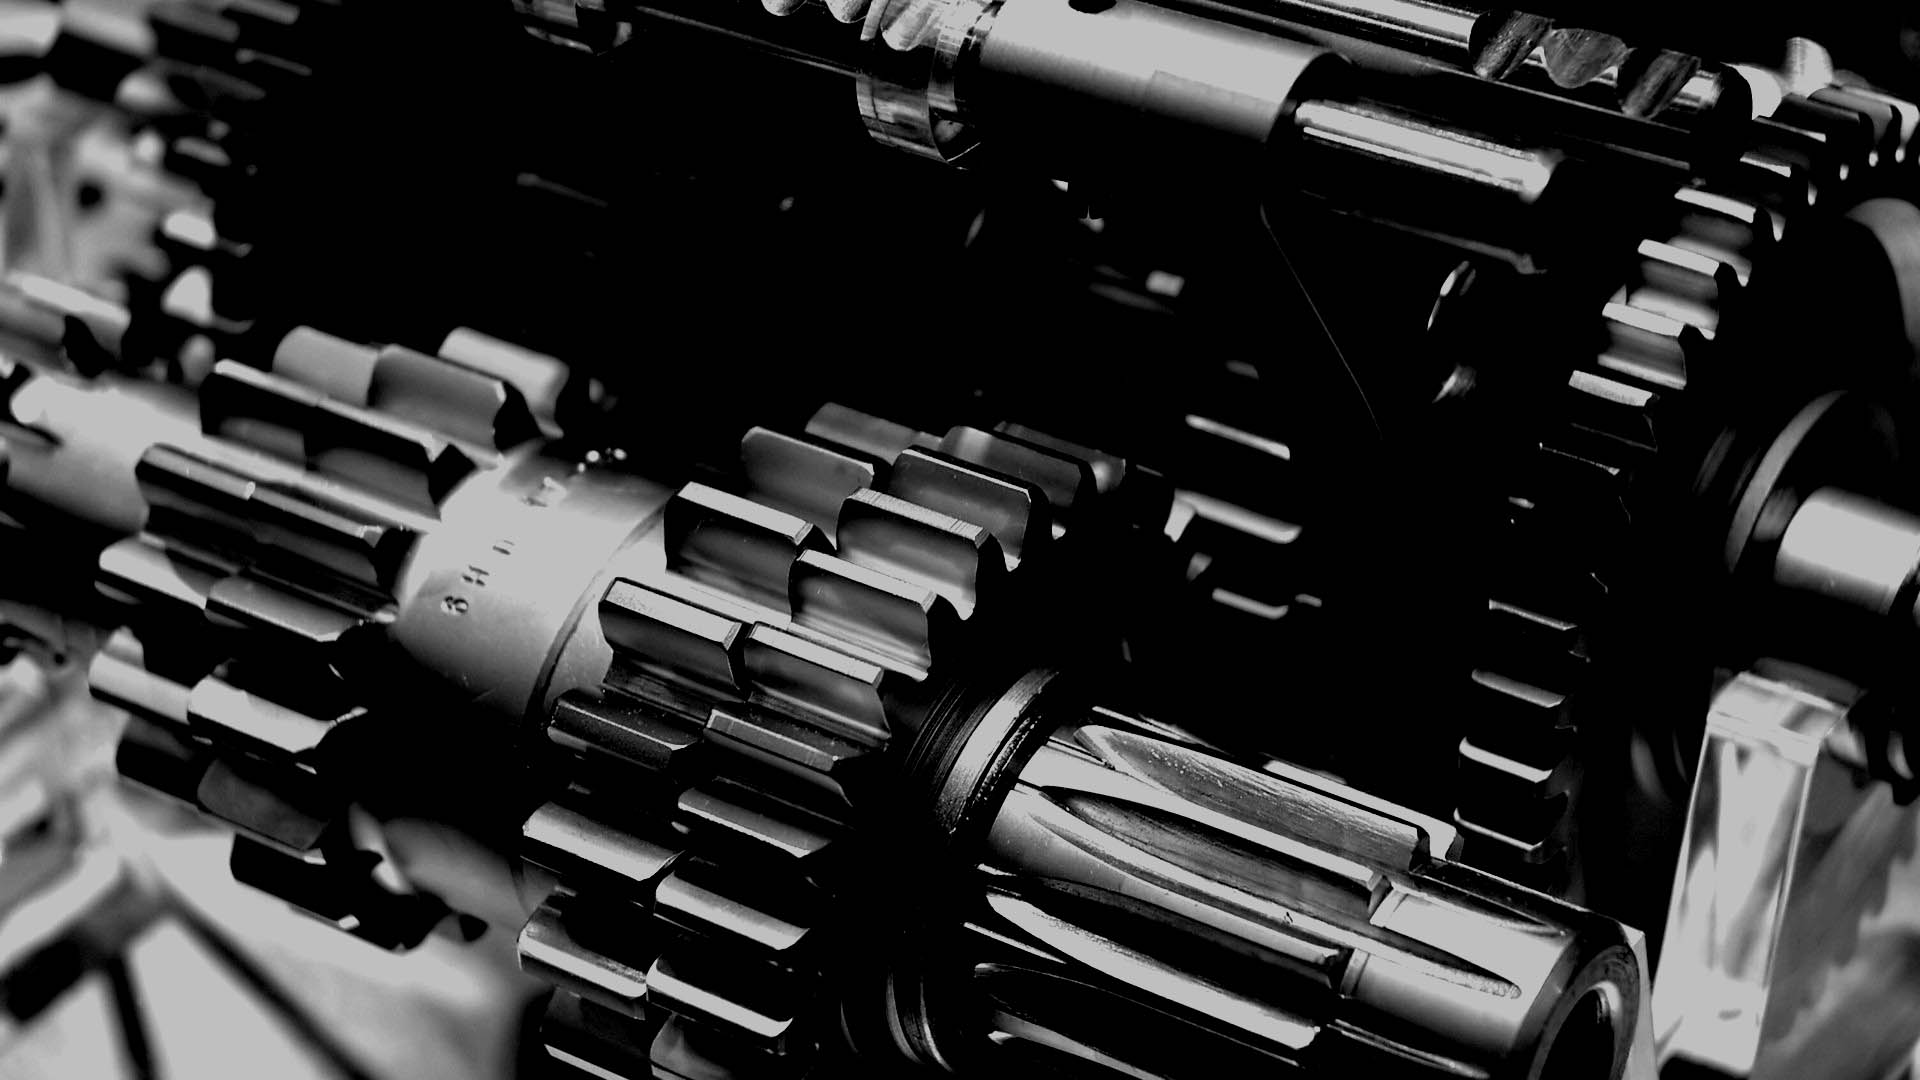 machine_gears_monochrome_desktop_1920x1080_hd-wallpaper ...